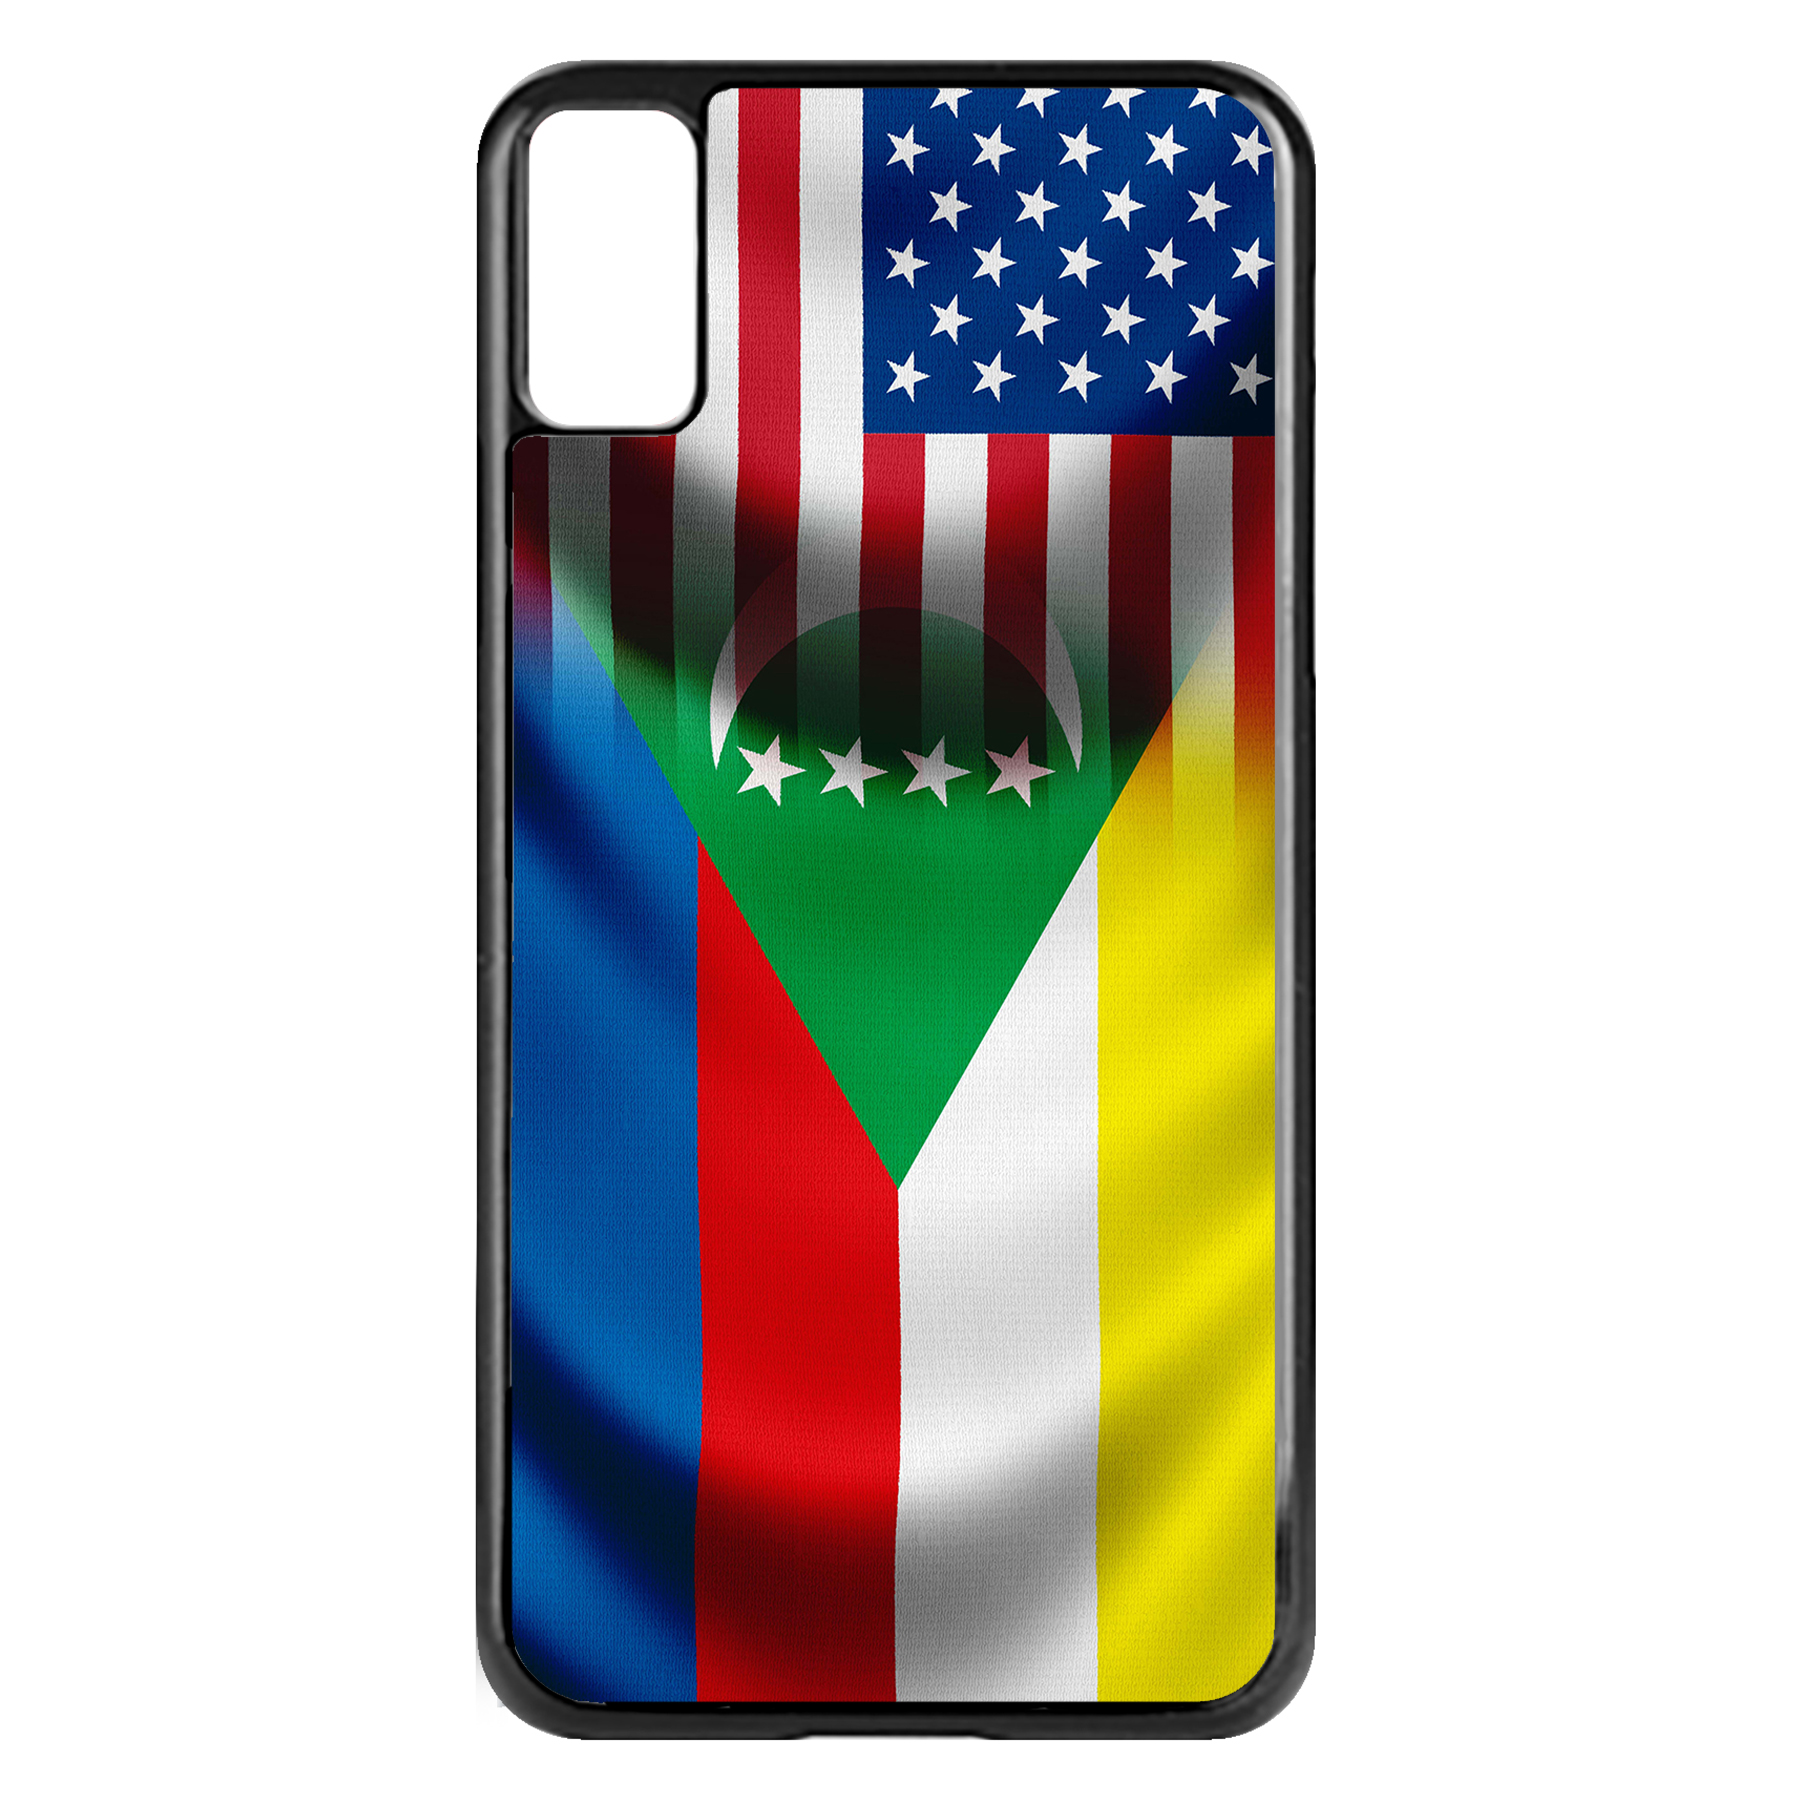 Apple-iPhone-Case-with-Flag-of-Comoros-Comorian-Many-Design-Options thumbnail 38